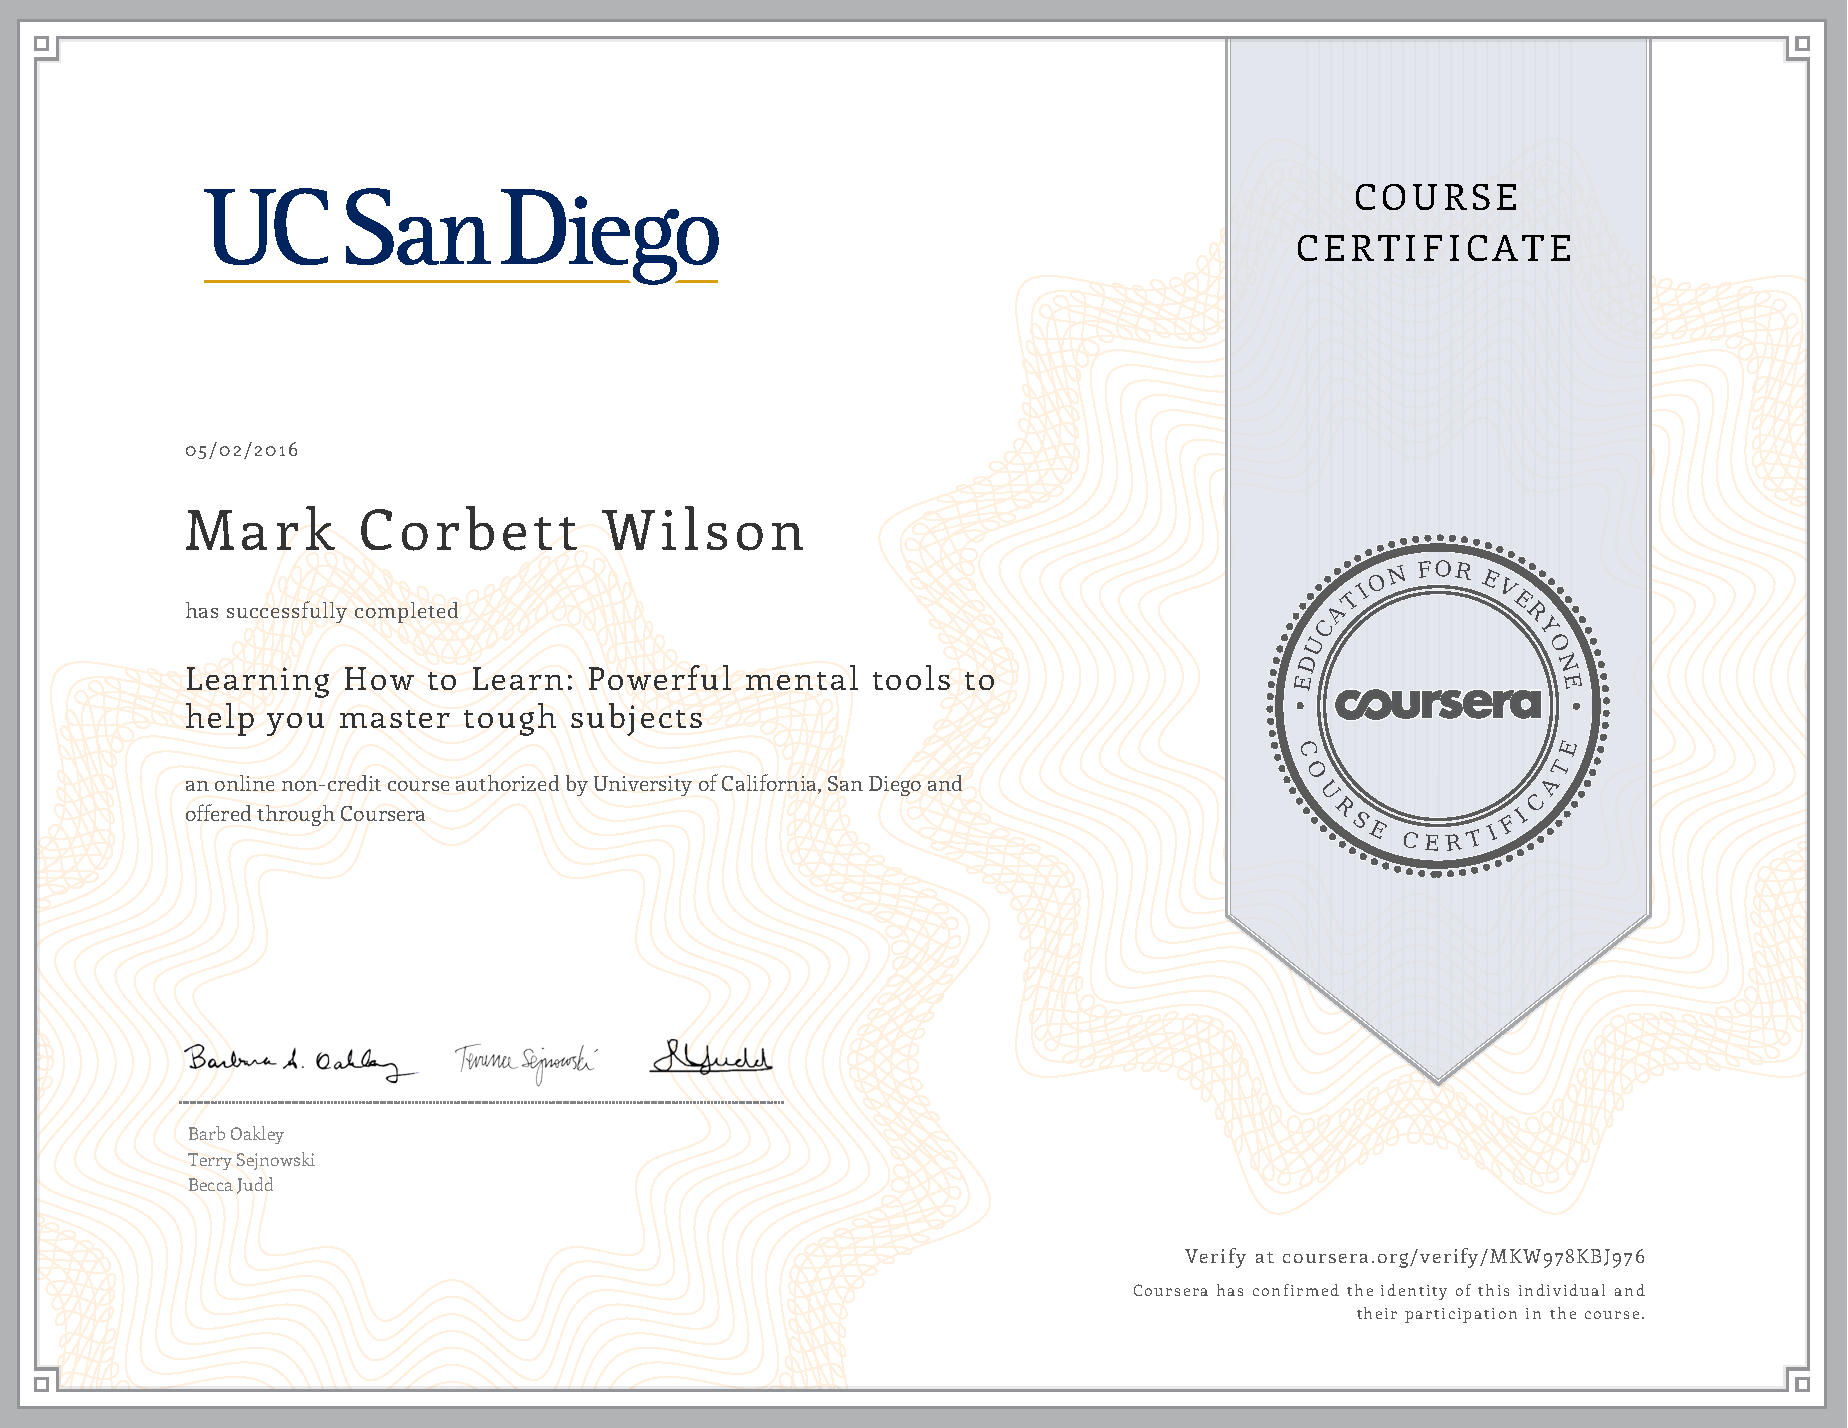 Learning How to Learn: Powerful mental tools to help you master tough subjects by University of California, San Diego on Coursera. Certificate earned on May 2, 2016